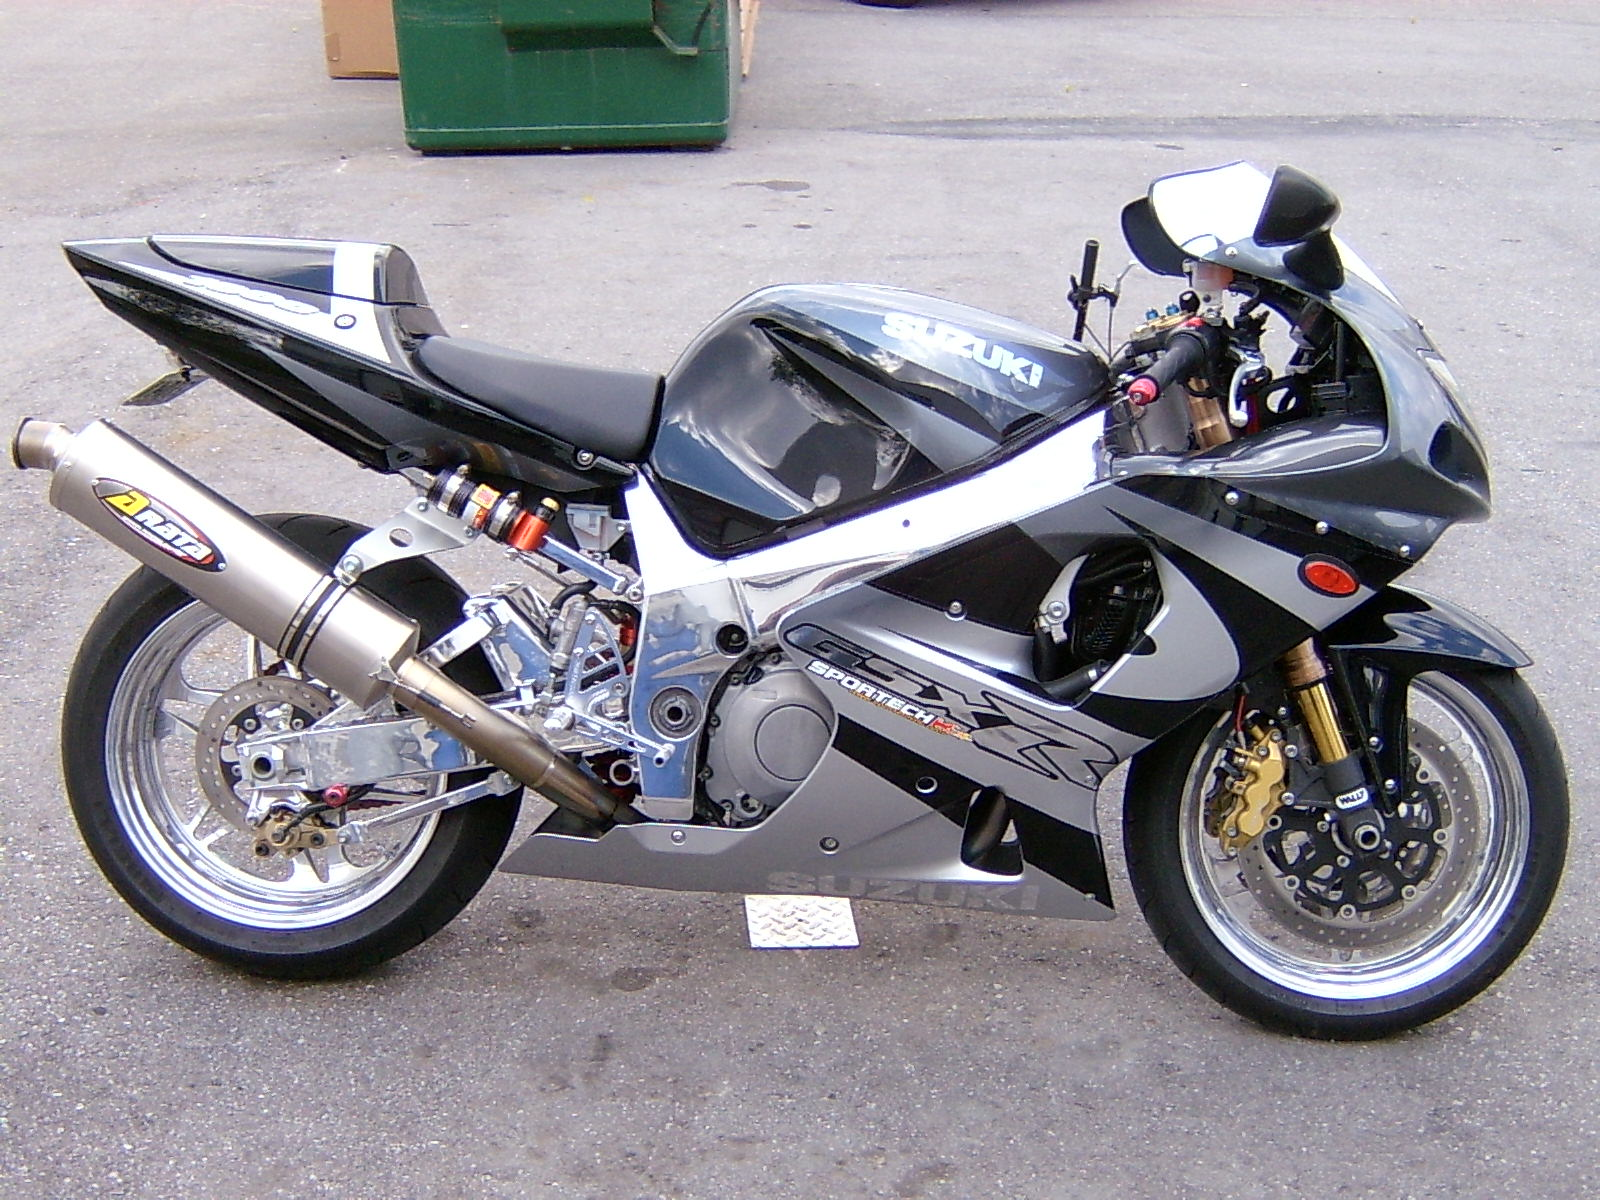 2001 suzuki gsx r 1000 pics specs and information. Black Bedroom Furniture Sets. Home Design Ideas